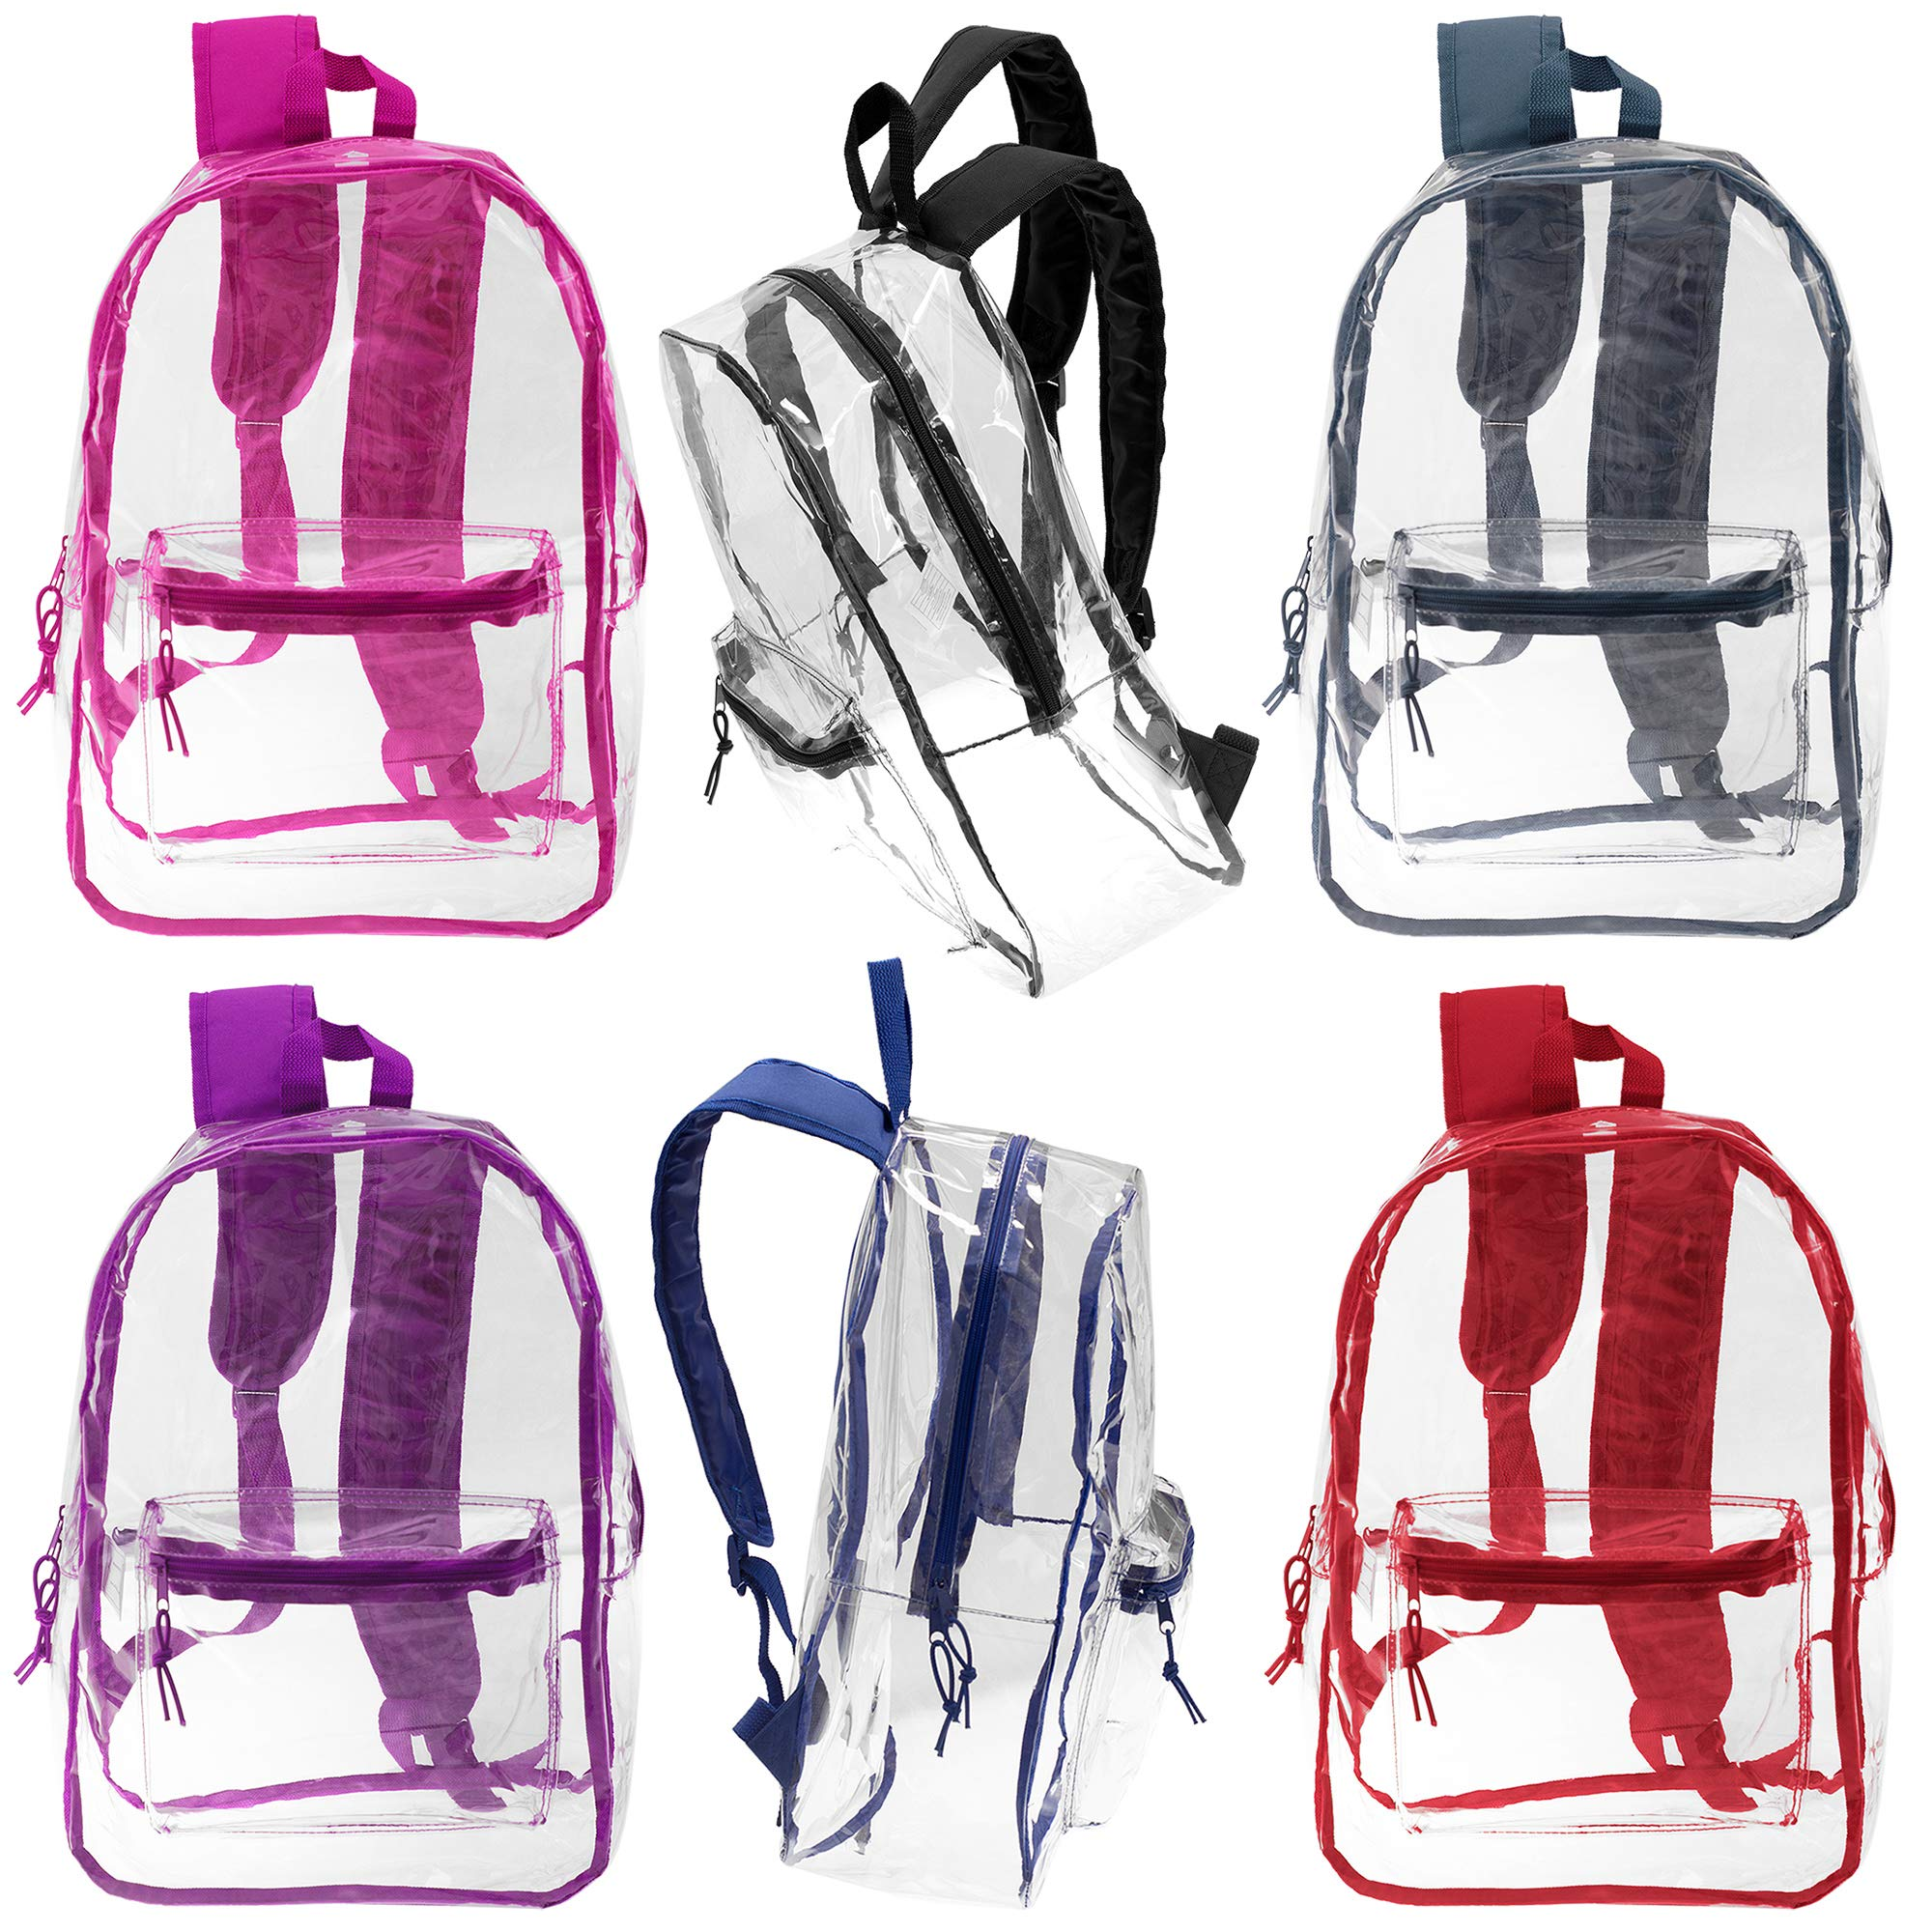 17 Inch Wholesale Deluxe Clear Backpacks in 6 Assorted Colors - Bulk Case of 24 Bookbags by Moda West